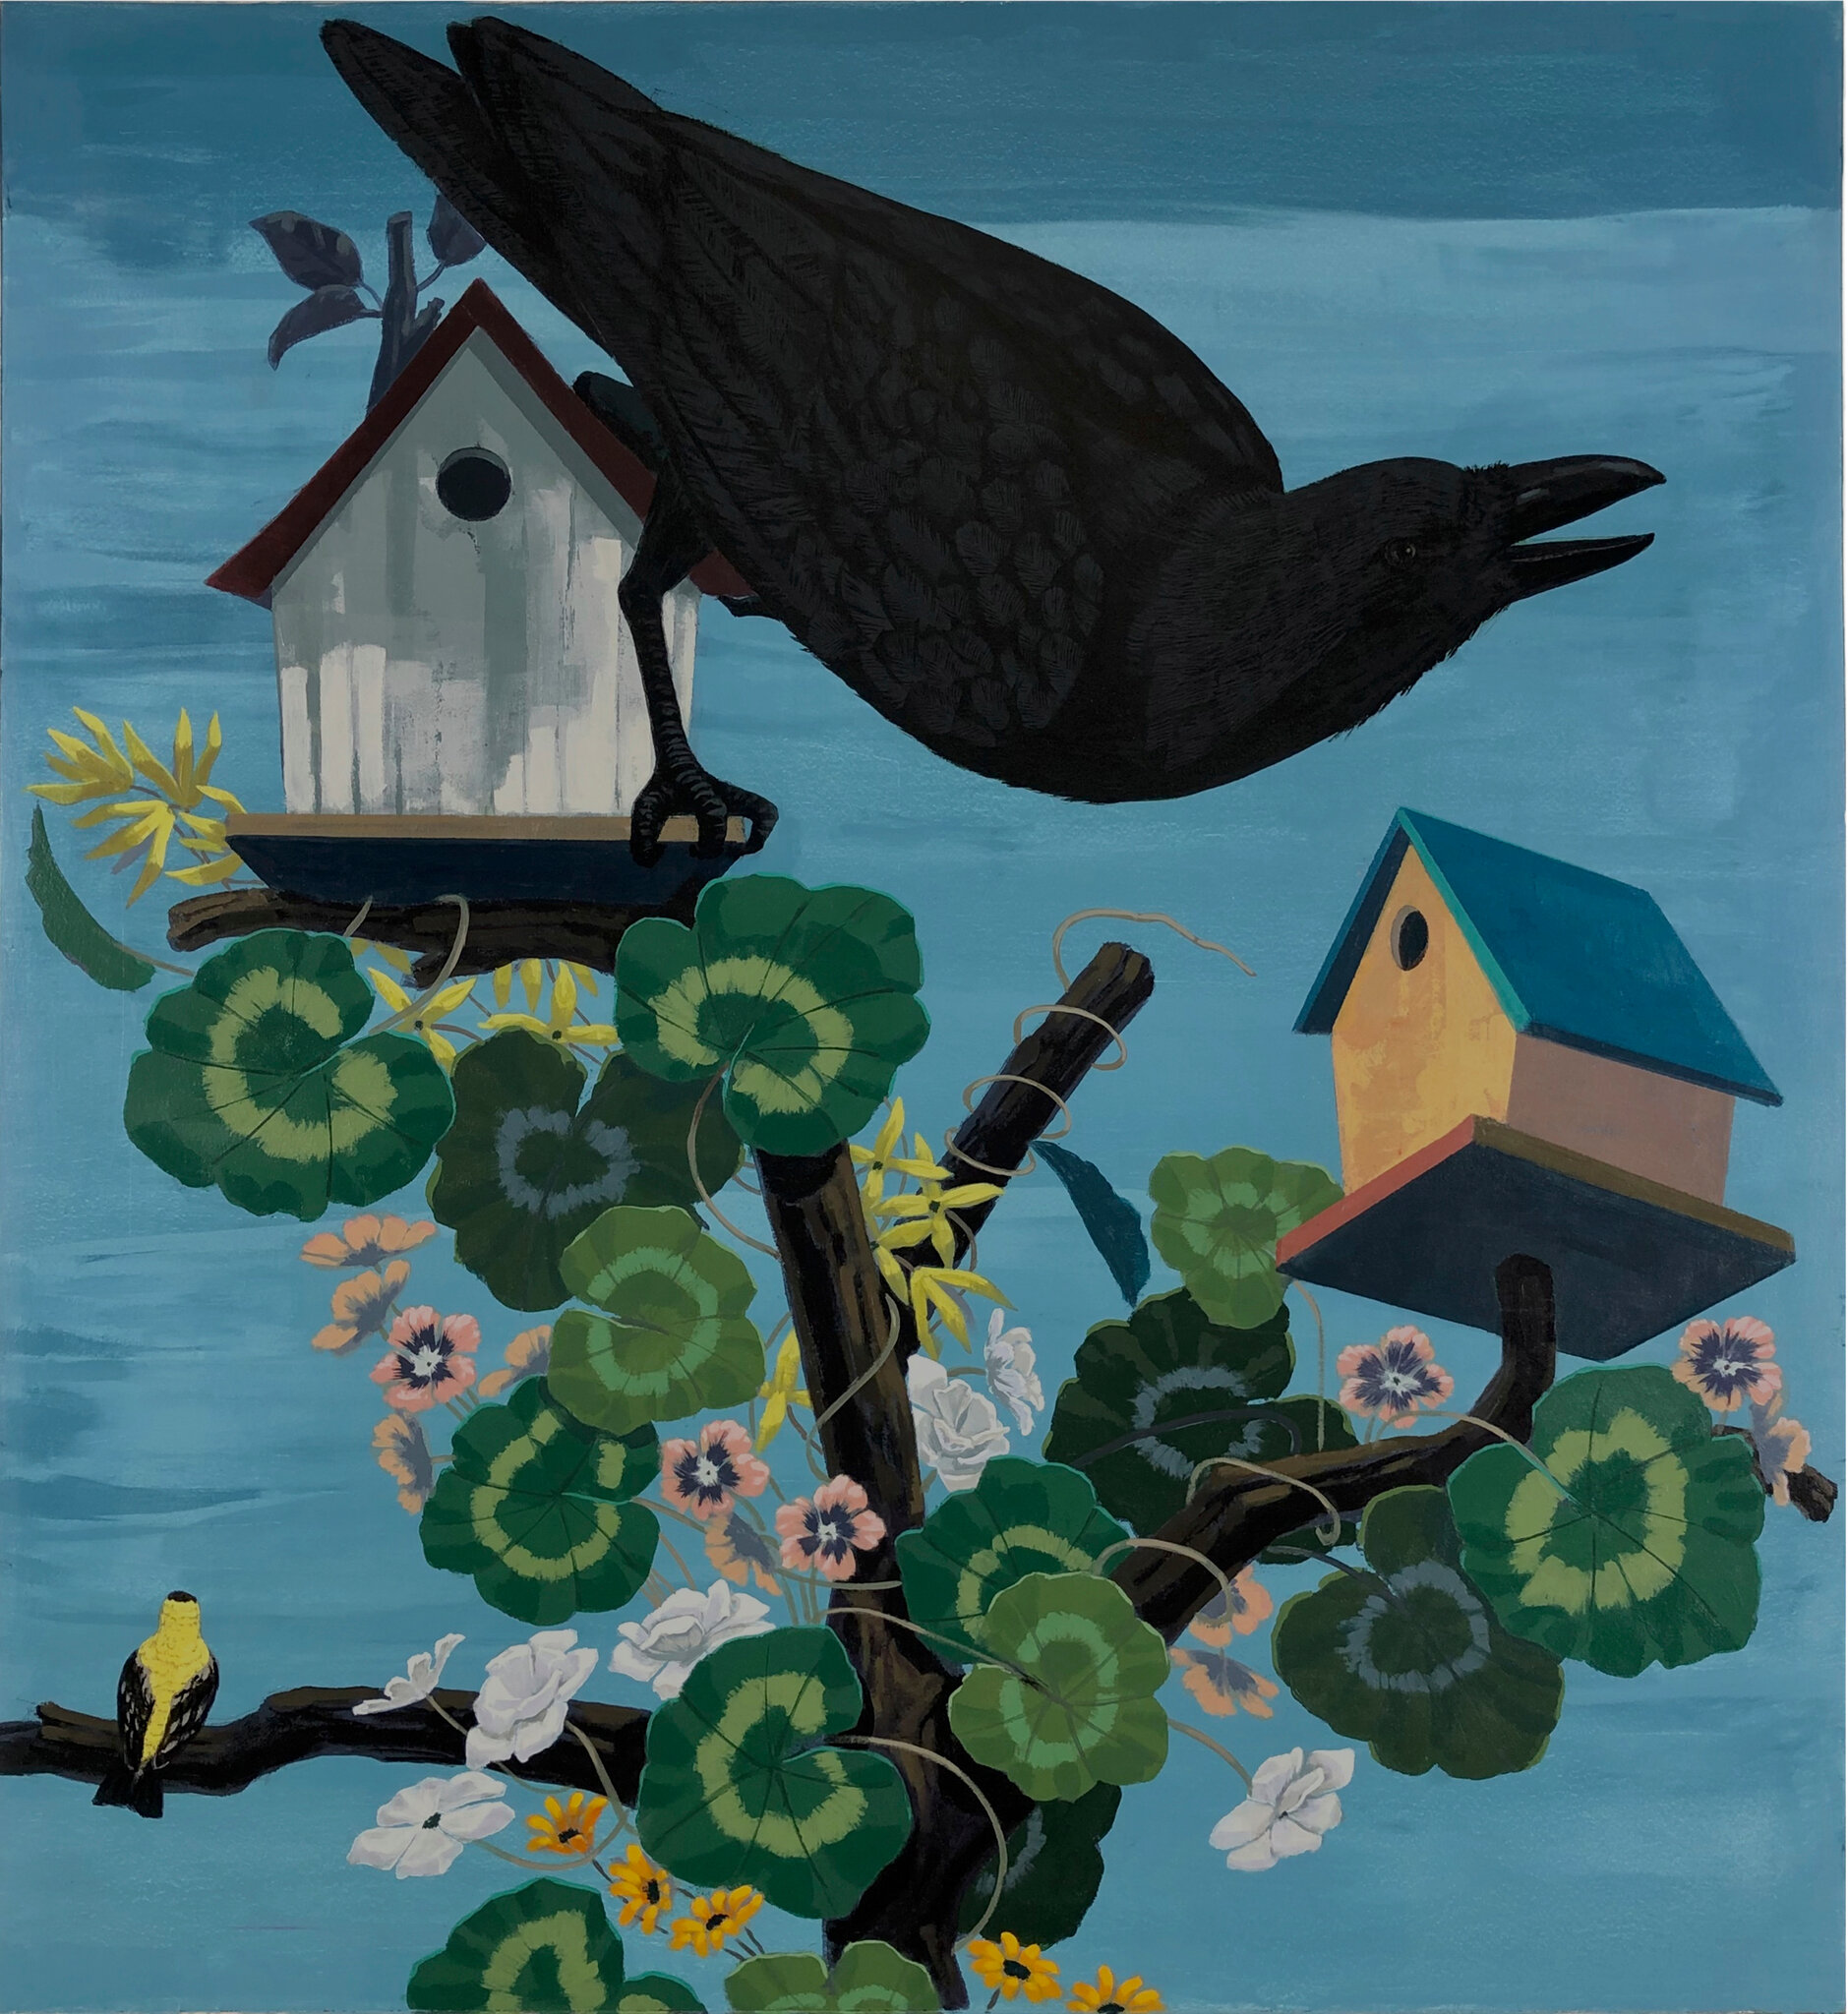 The message behind Kerry James Marshall's new avian art